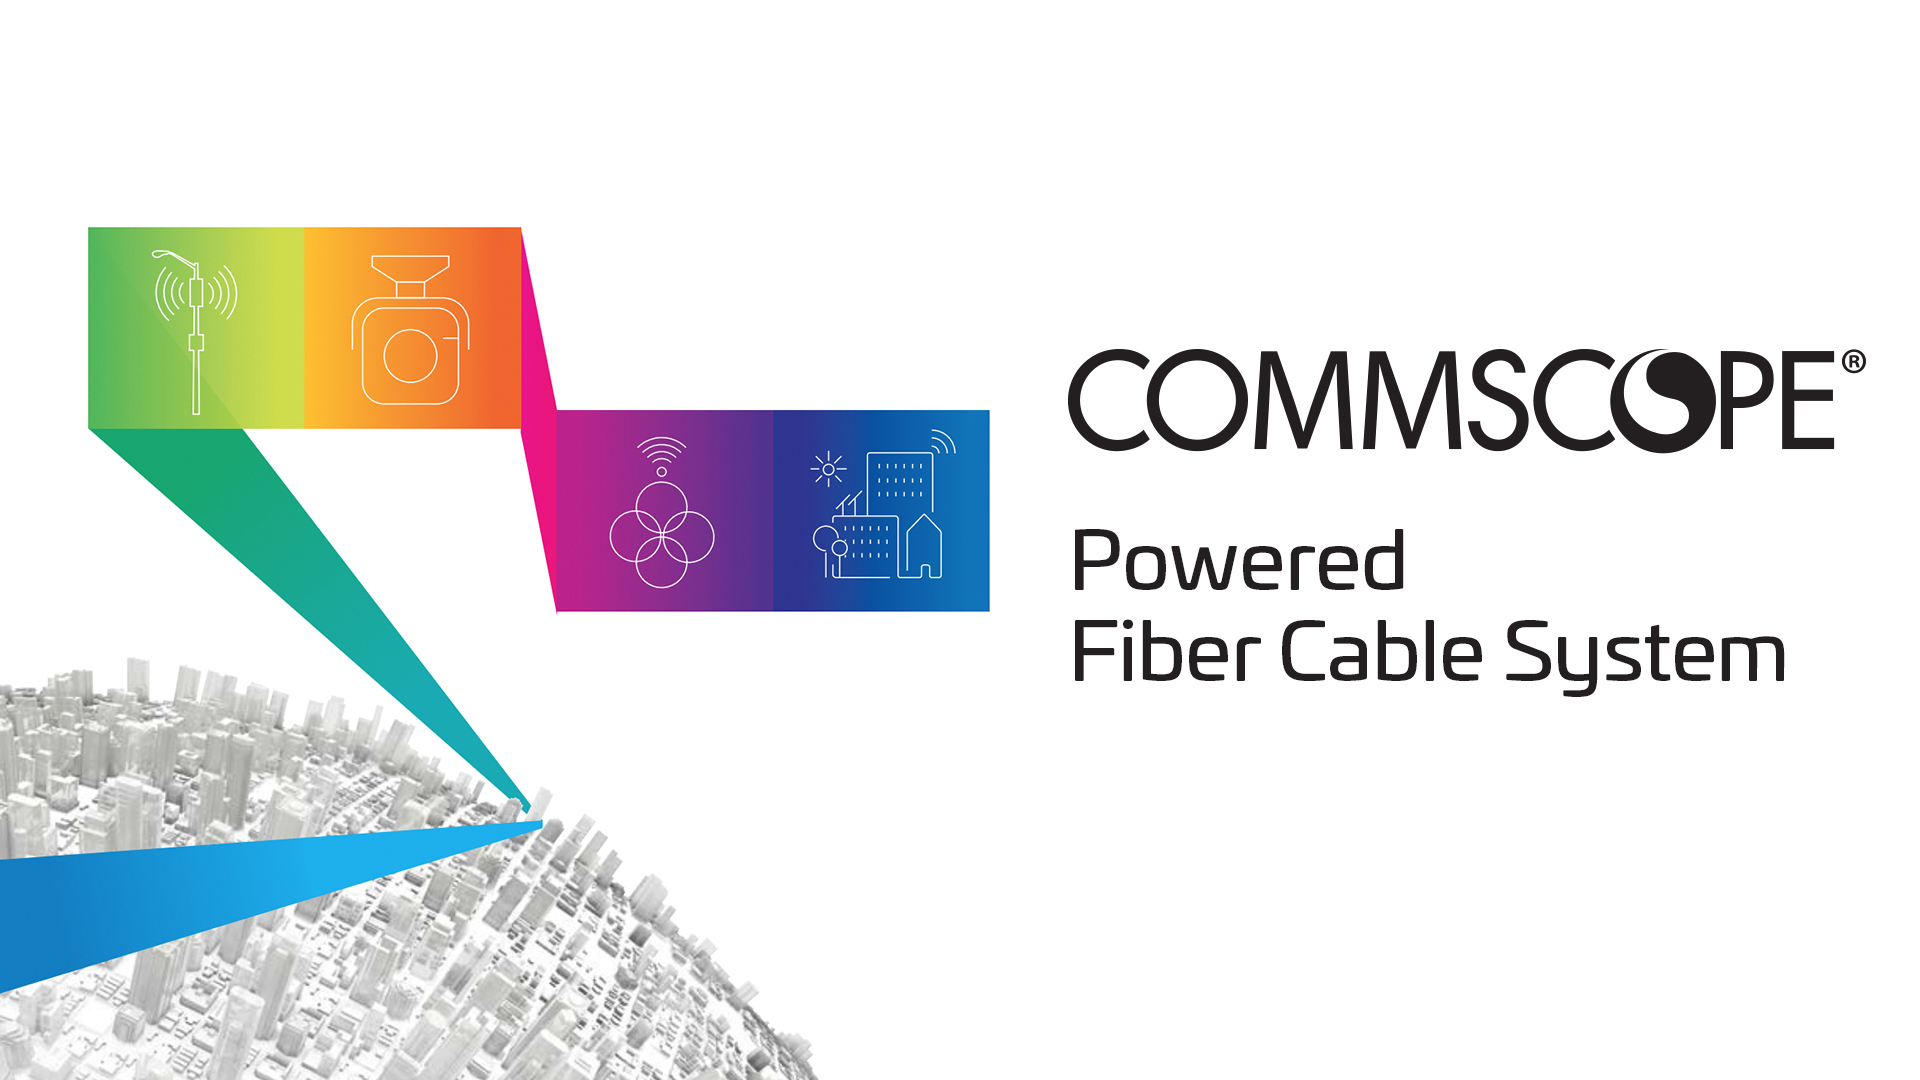 CommScope Power Fiber